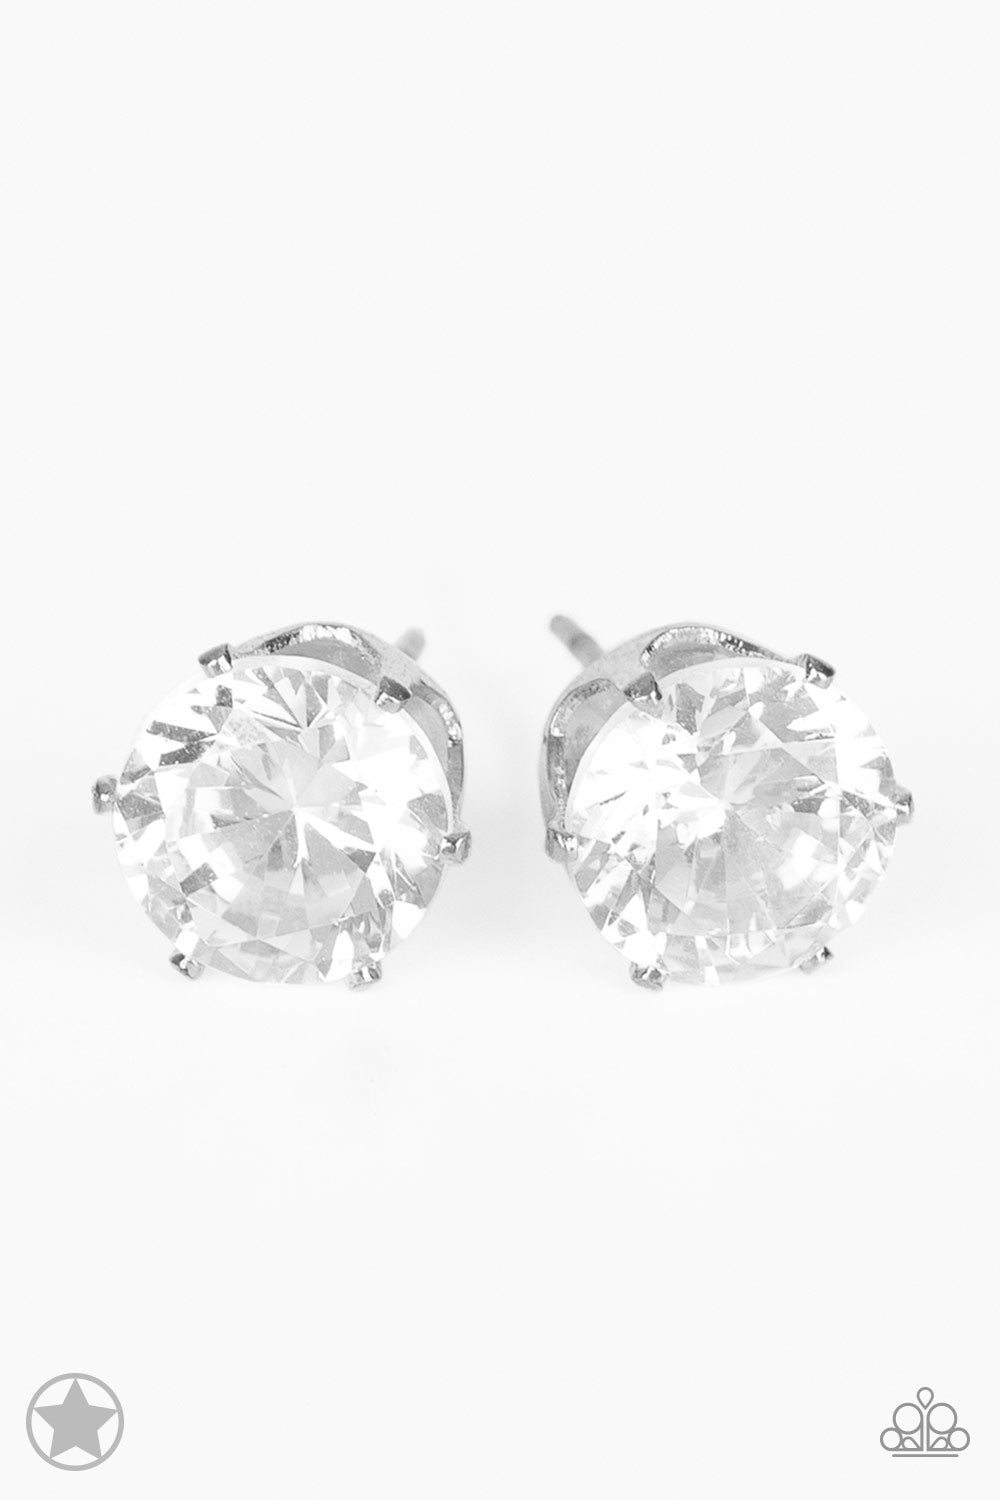 Paparazzi blockbuster just in timeless white rhinestone silver stud post earrings